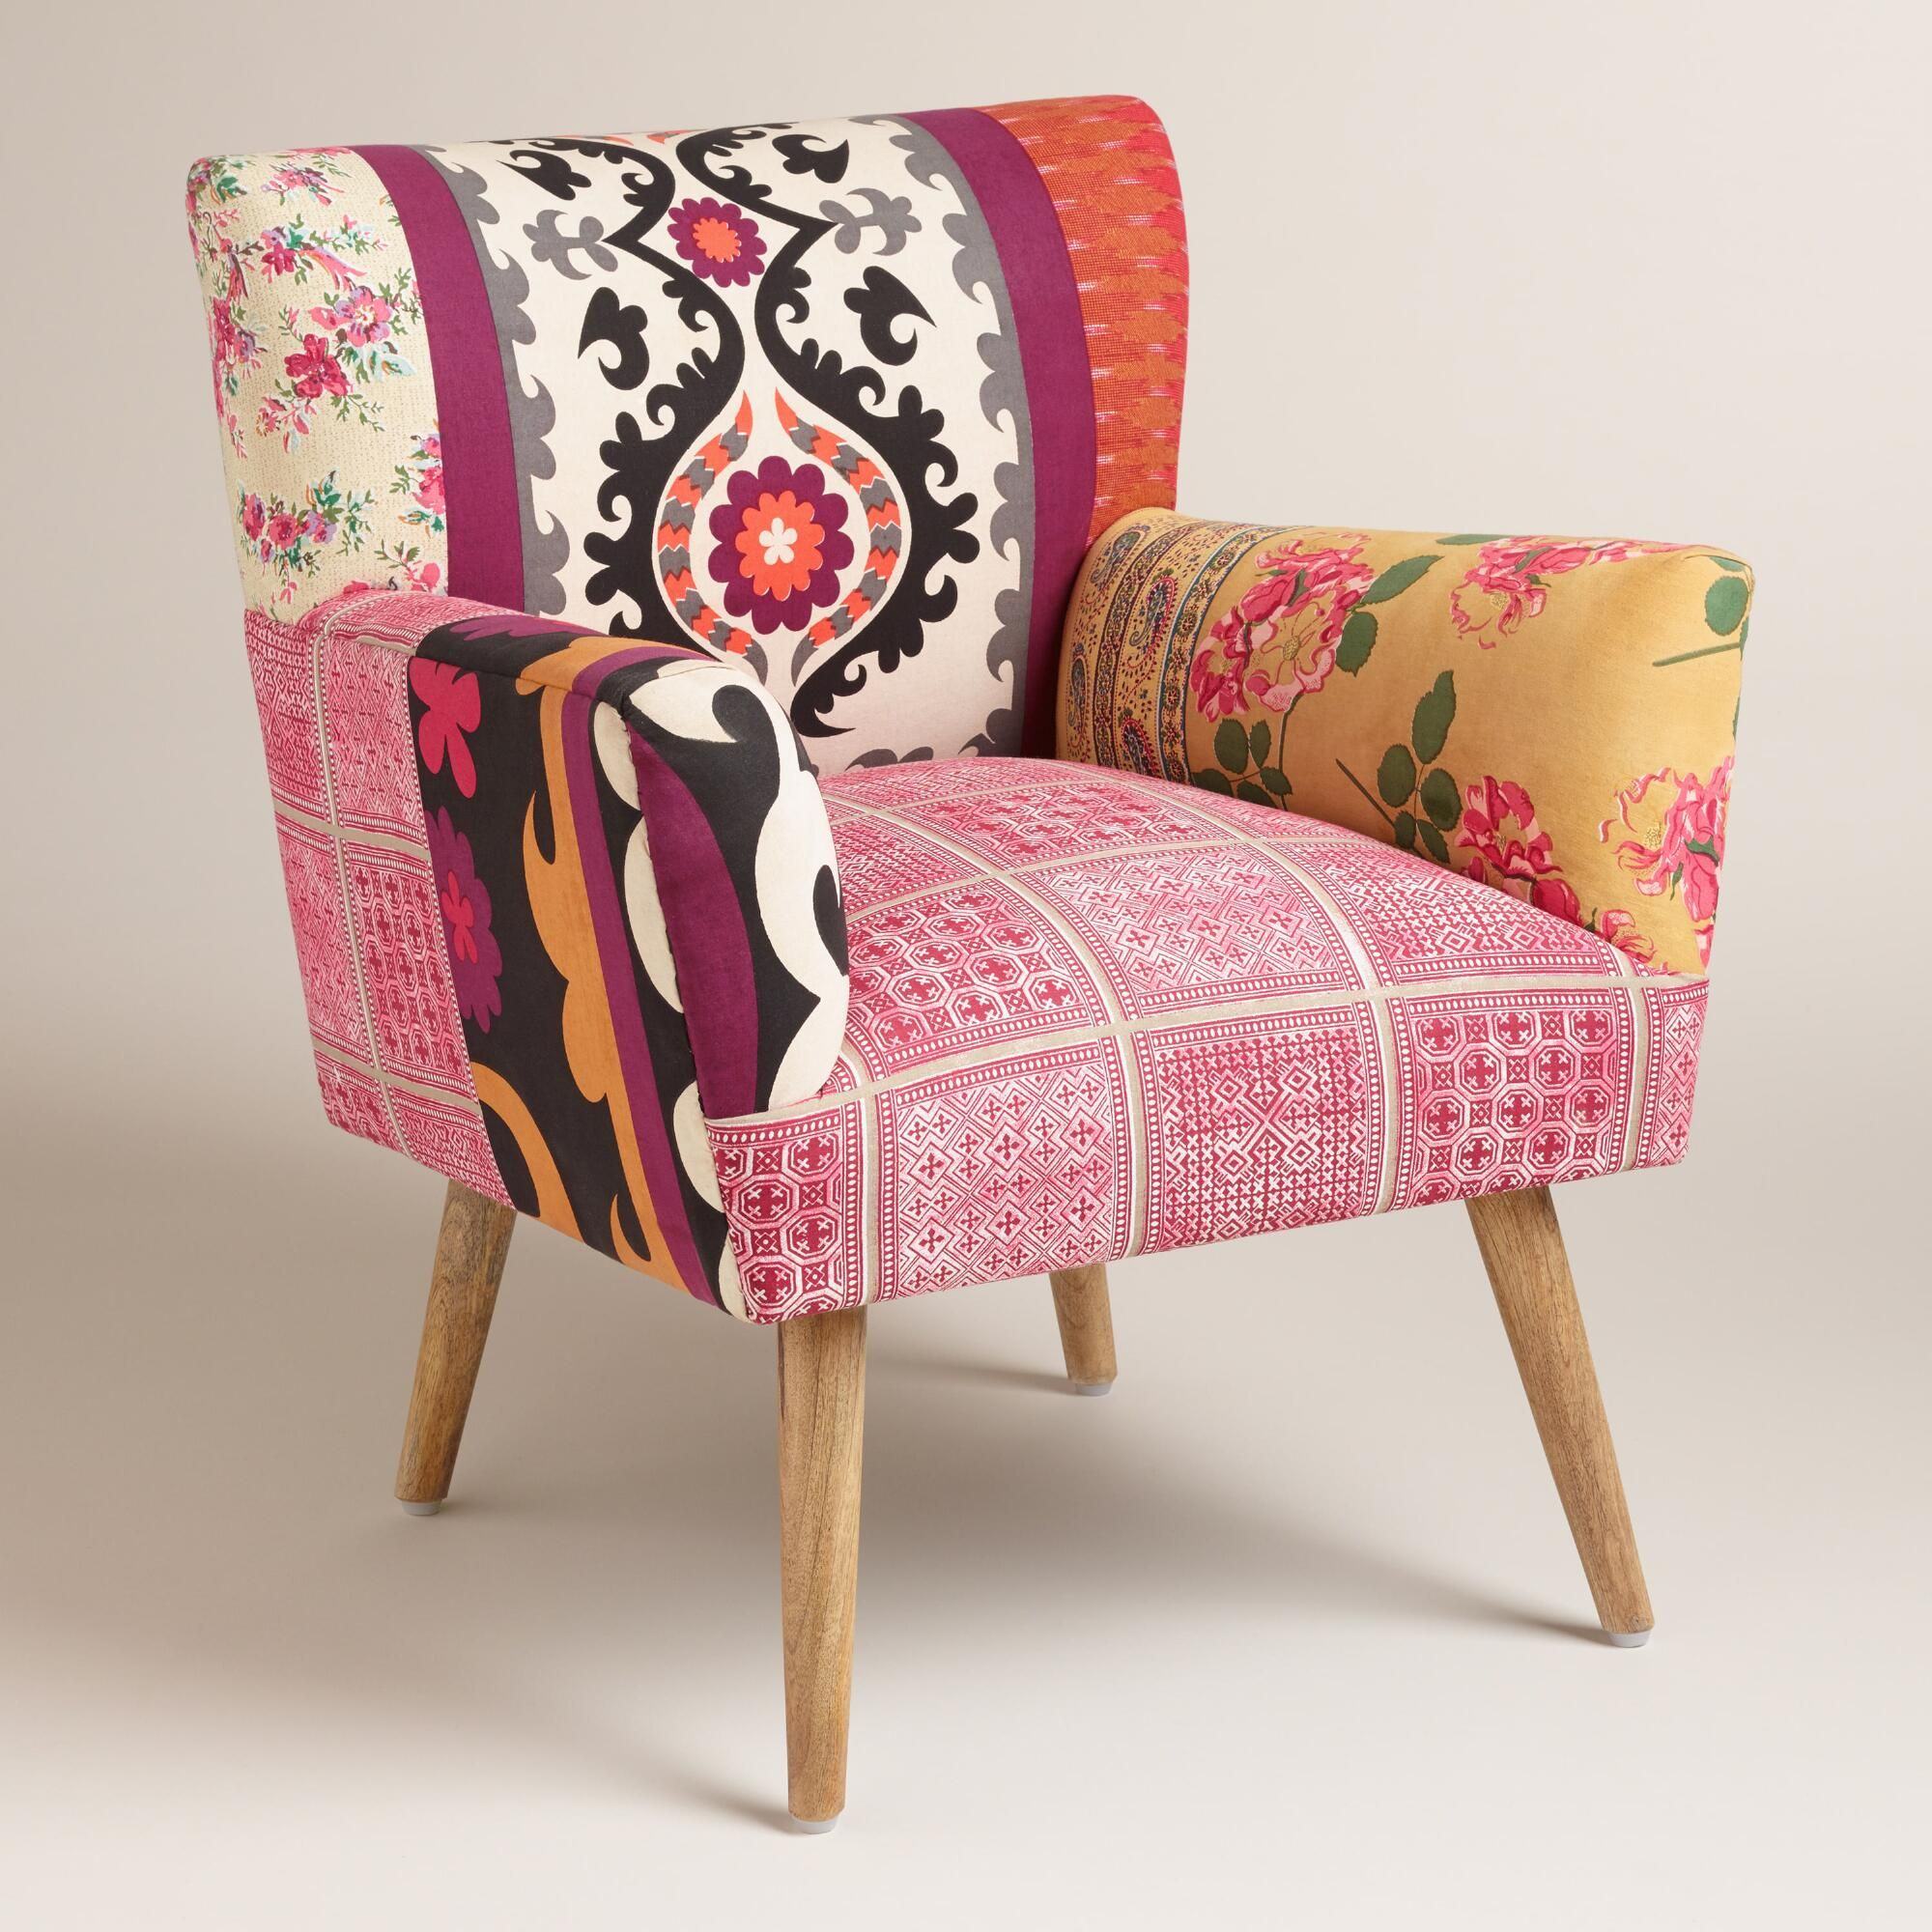 Colorful chairs for living room - Colorful Chairs For Living Room 32